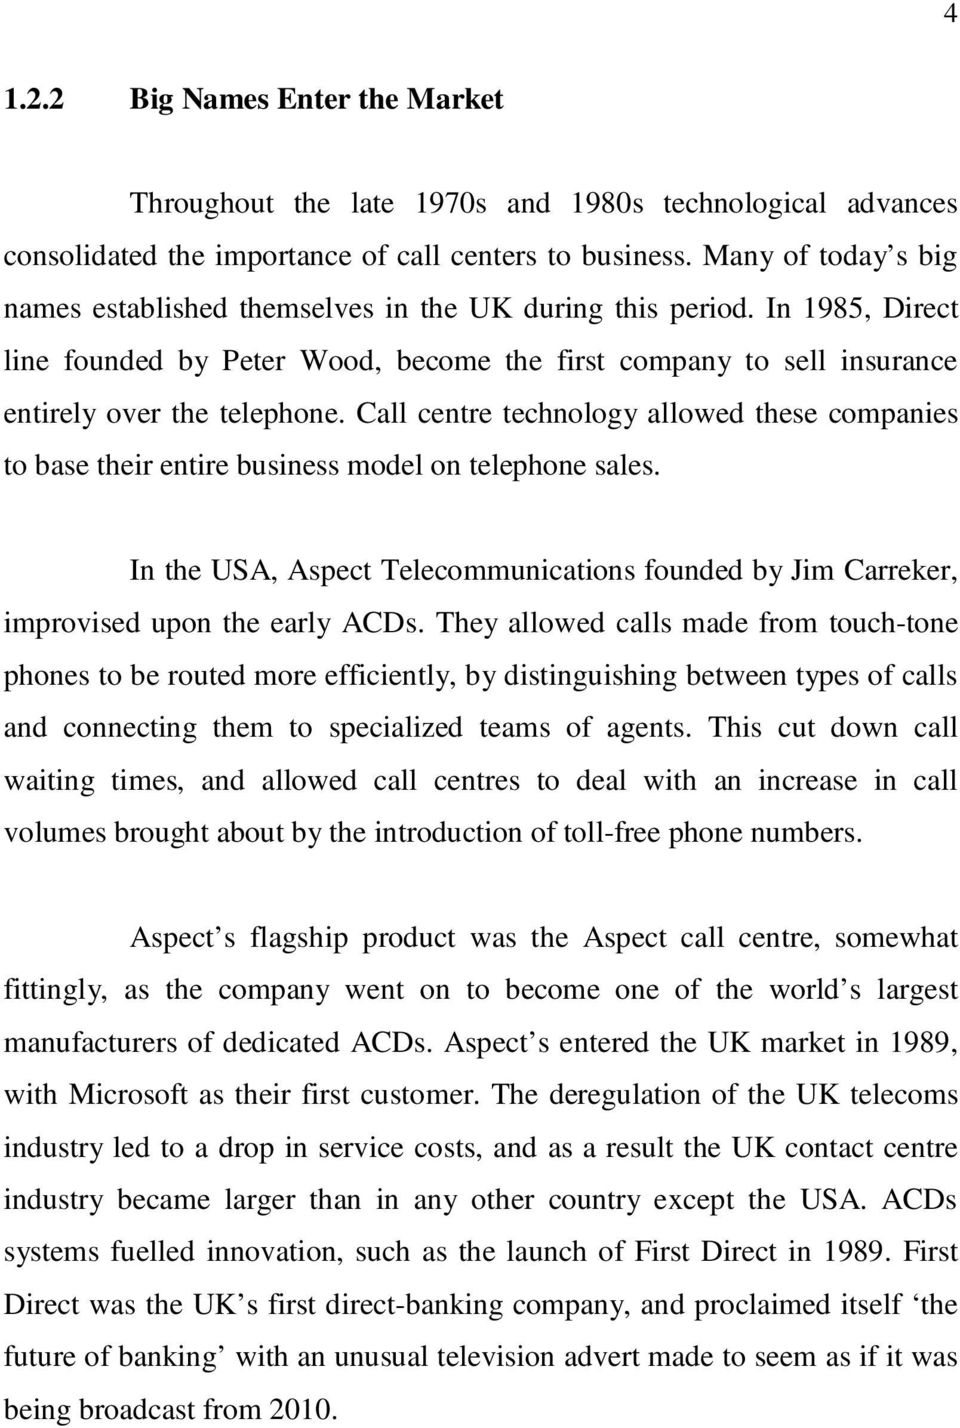 Call centre technology allowed these companies to base their entire business model on telephone sales. In the USA, Aspect Telecommunications founded by Jim Carreker, improvised upon the early ACDs.